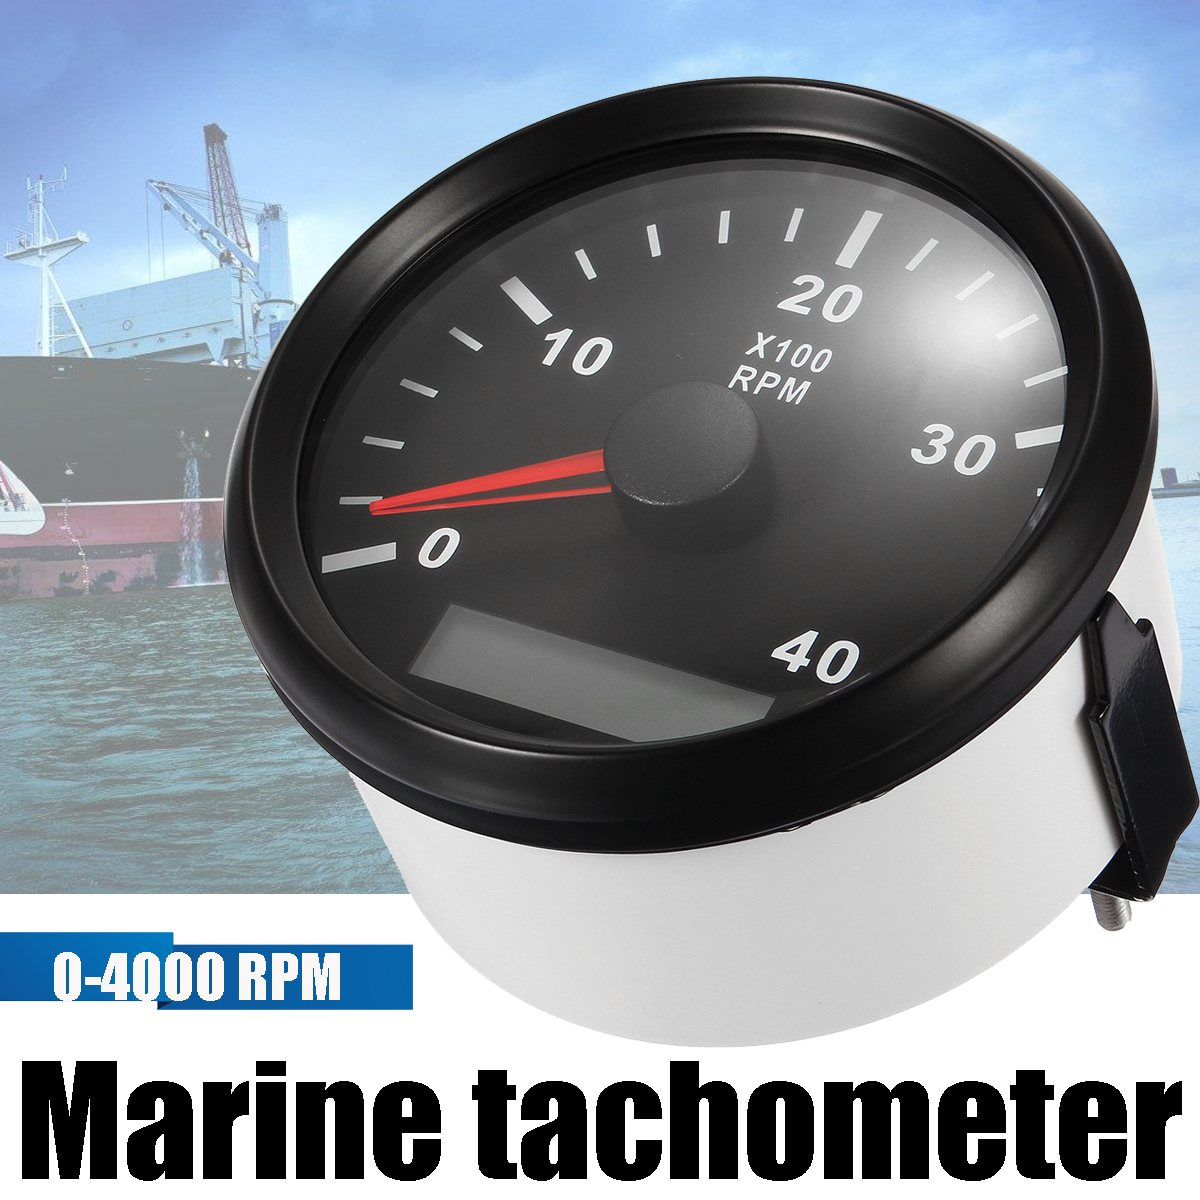 12 24v 0 4000 boat rpm 85m marine boat tachometer gauge lcd meter tacho hourmeter boat rpm white black with cable [ 1200 x 1200 Pixel ]